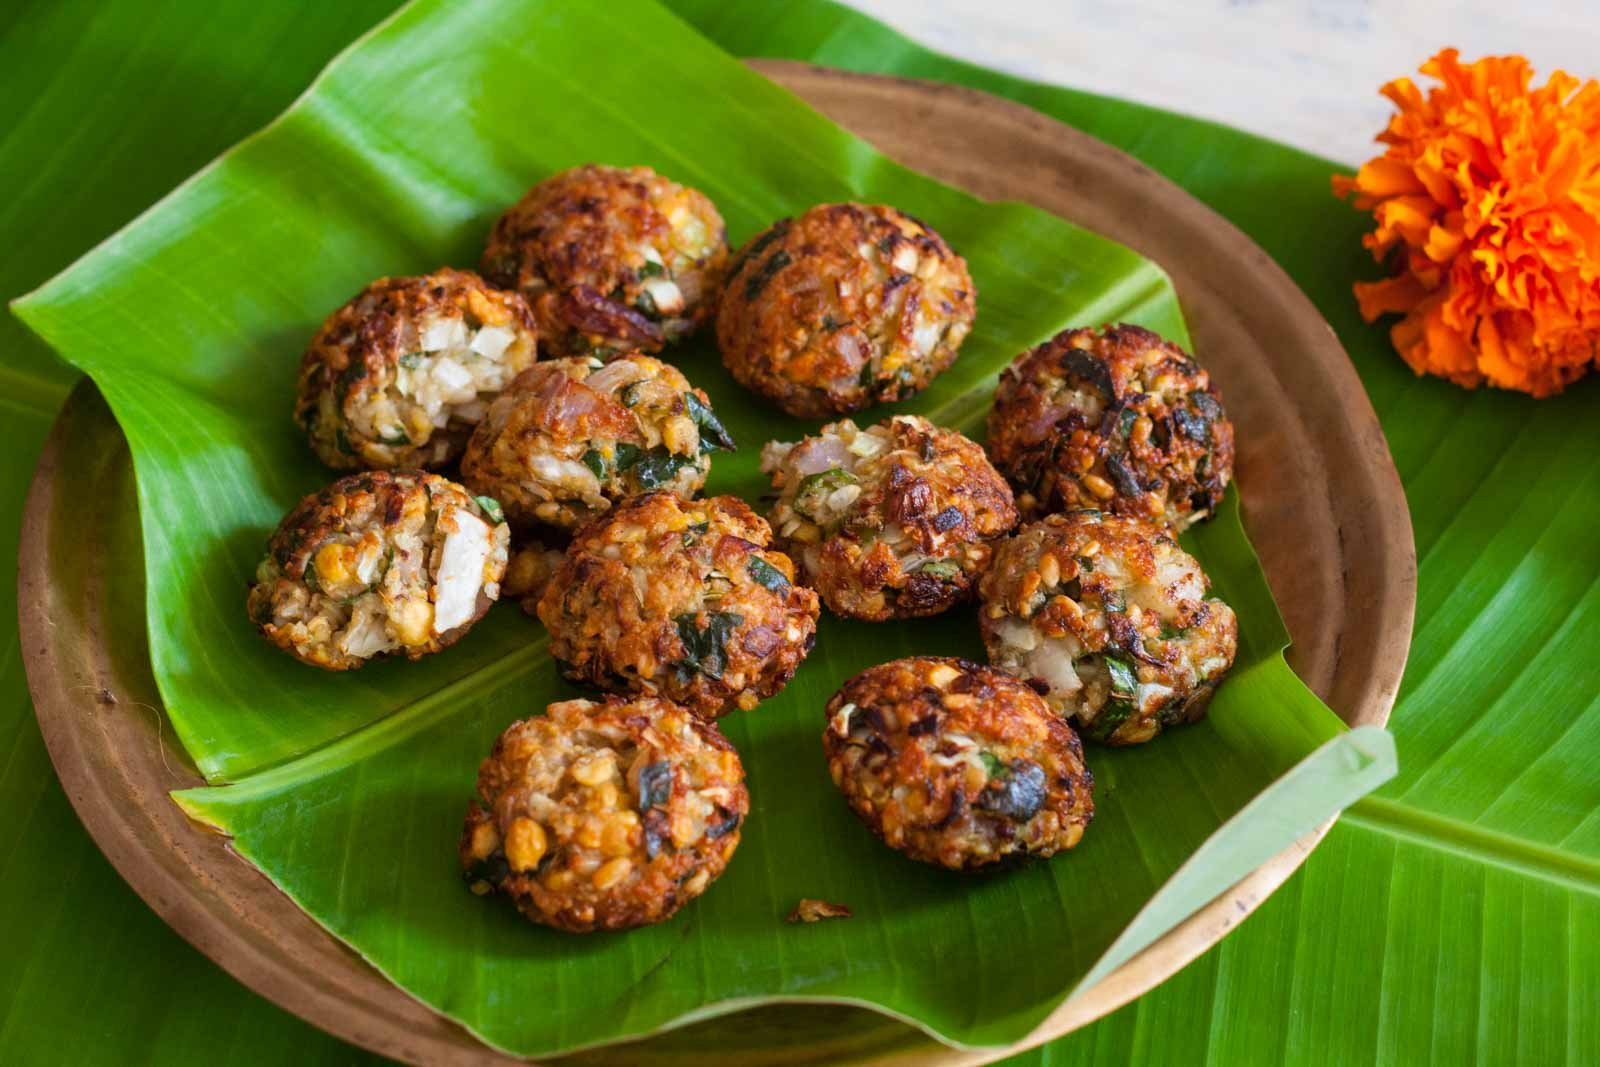 Tamil nadu style dal masala vada with cabbage recipe by archanas a mouthwatering snack that is made with dals and vegetable and fried in a kuzhi paniyaram pan forumfinder Gallery